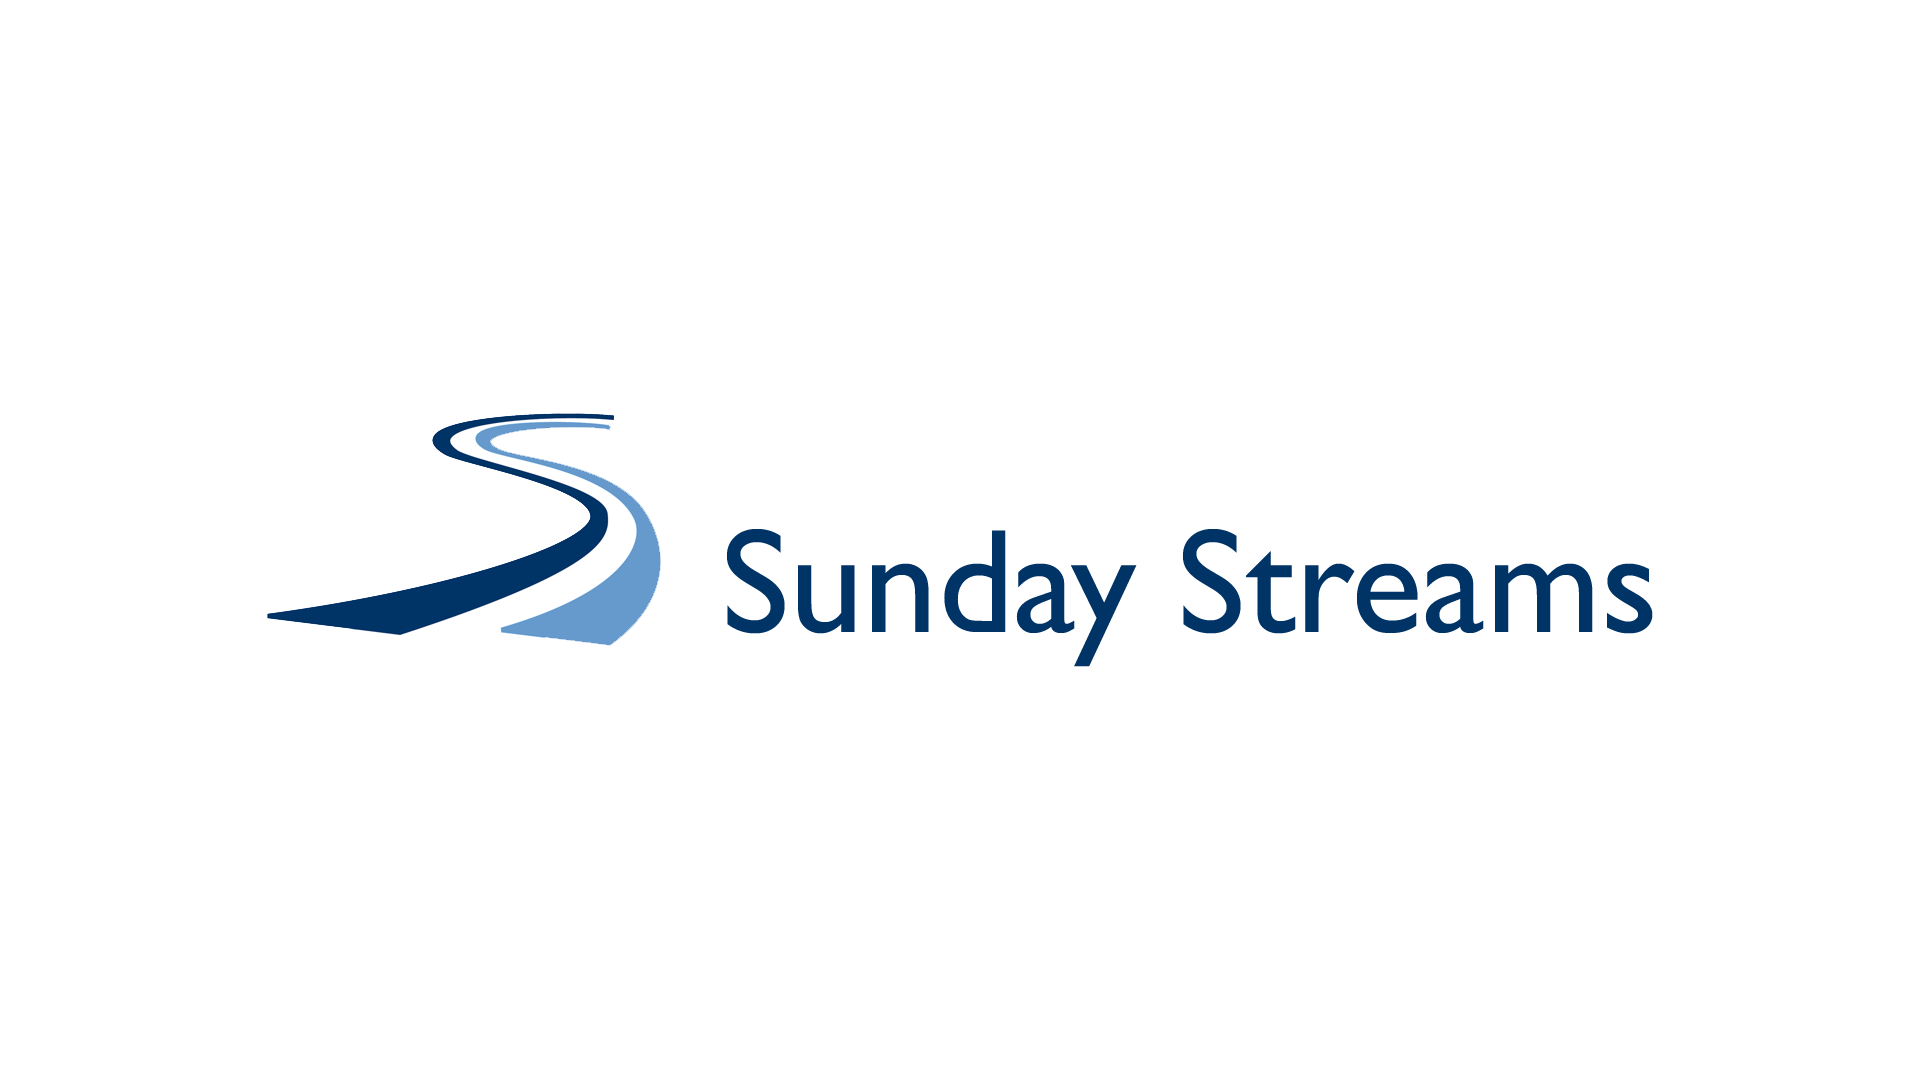 Sunday Streams